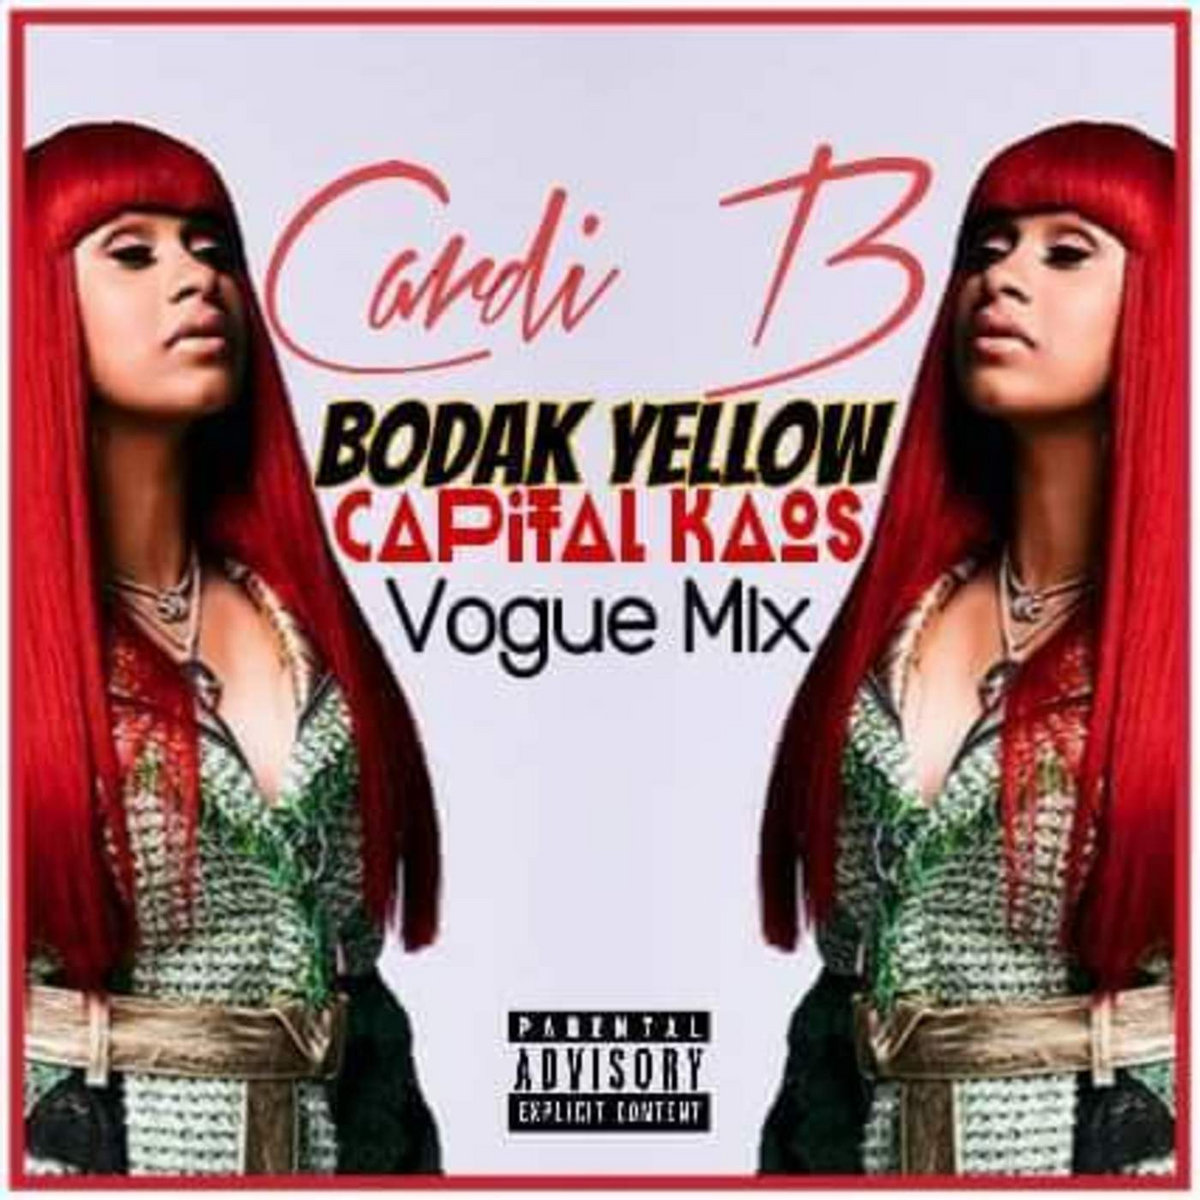 cardi b - bodak yellow mp3